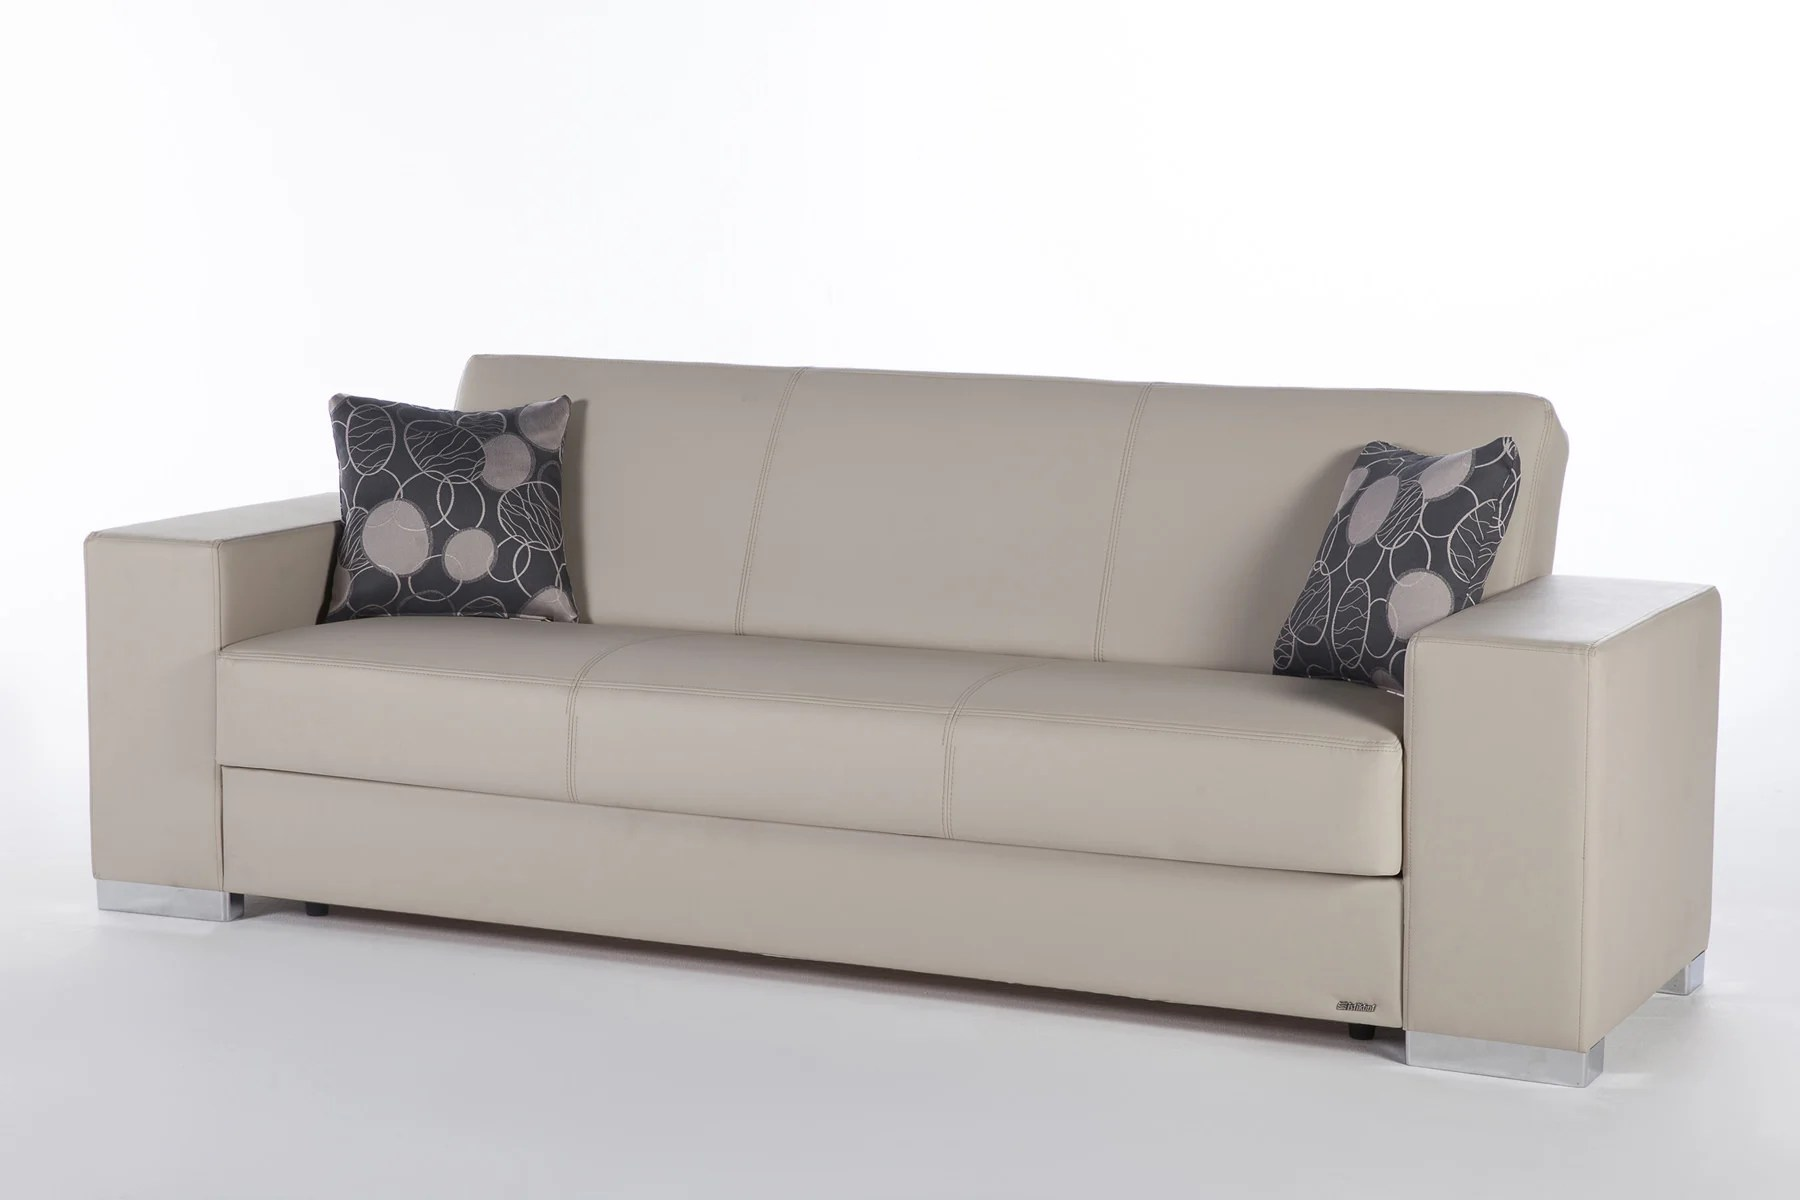 Futon Factory Paris Kobe Santa Glory Cream Convertible Sofa Bed By Istikbal Furniture